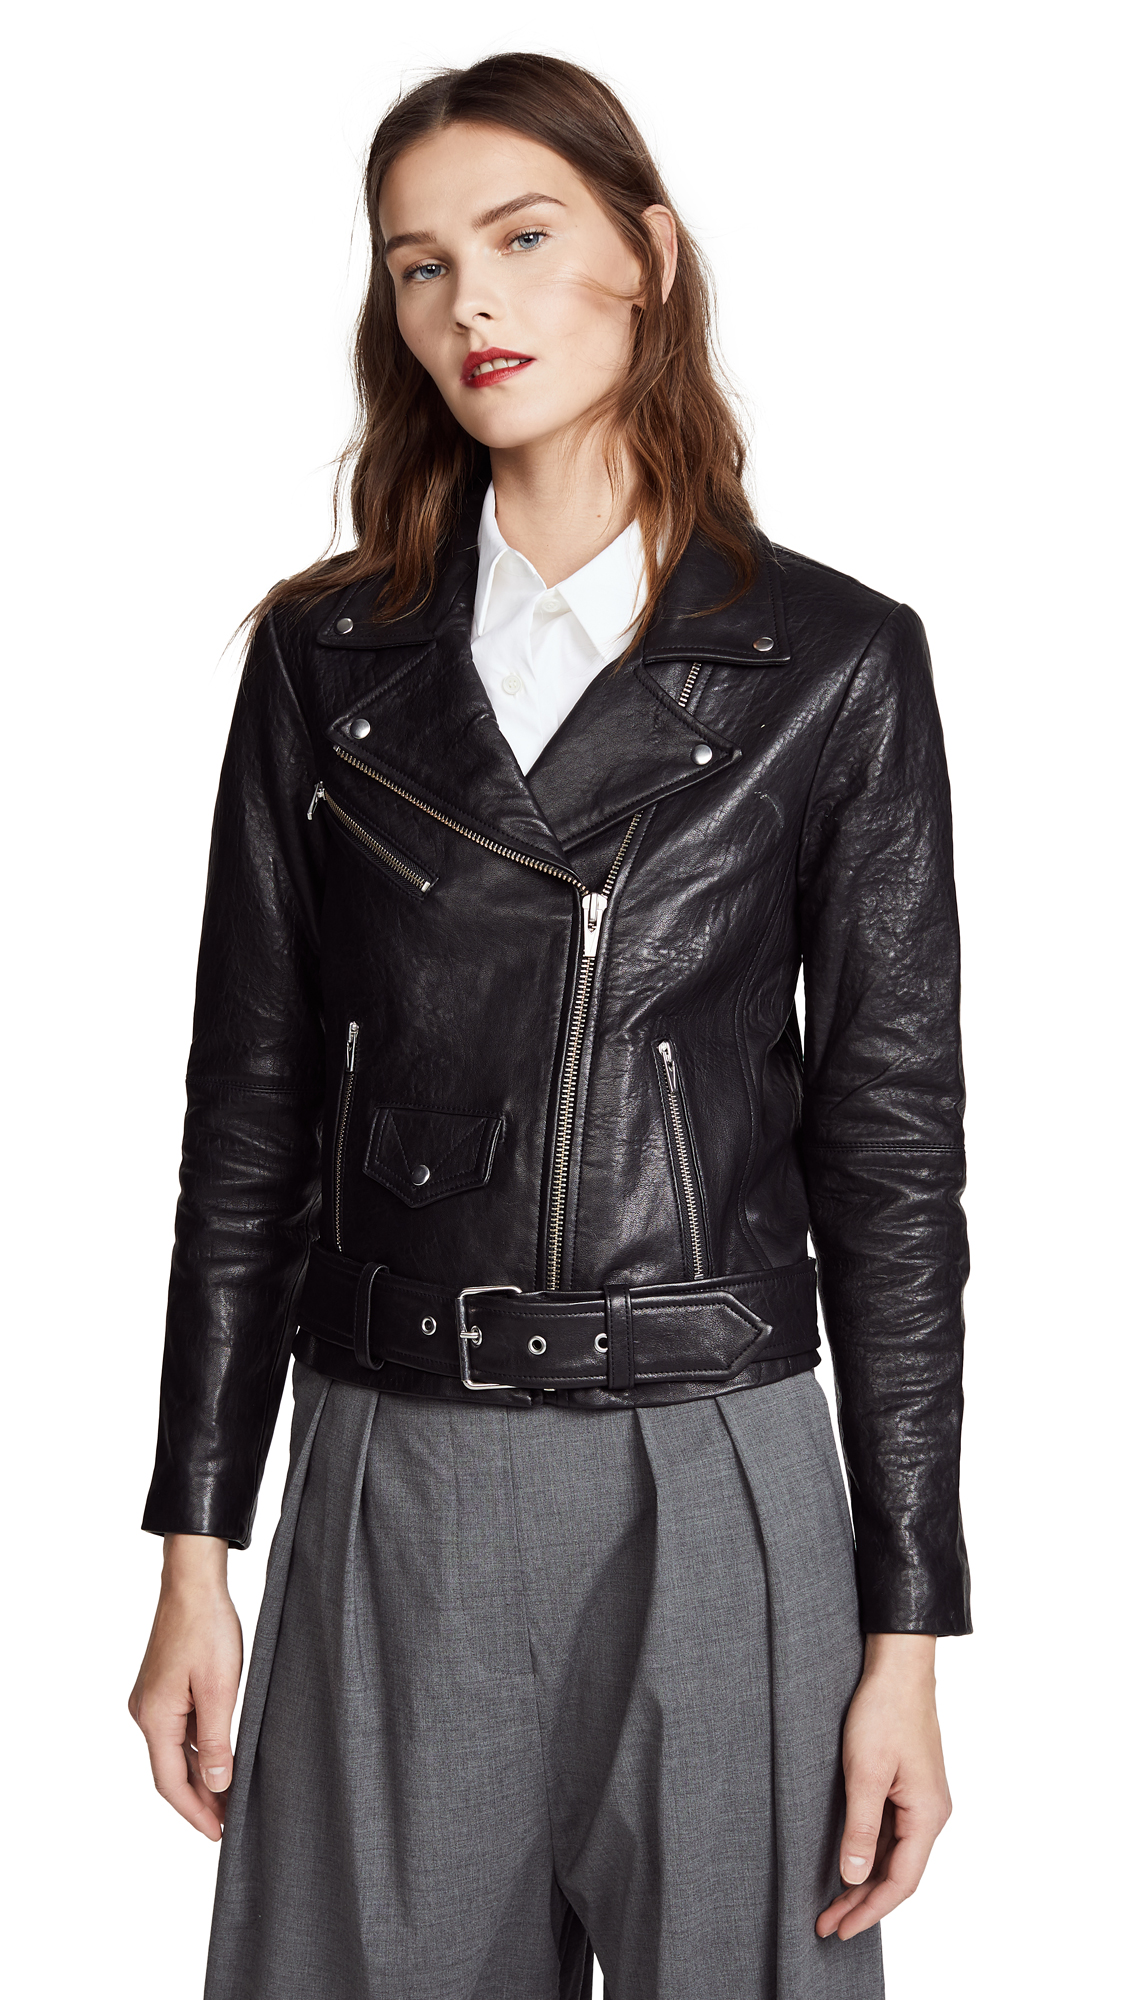 VEDA Jayne Classic Leather Jacket - Black